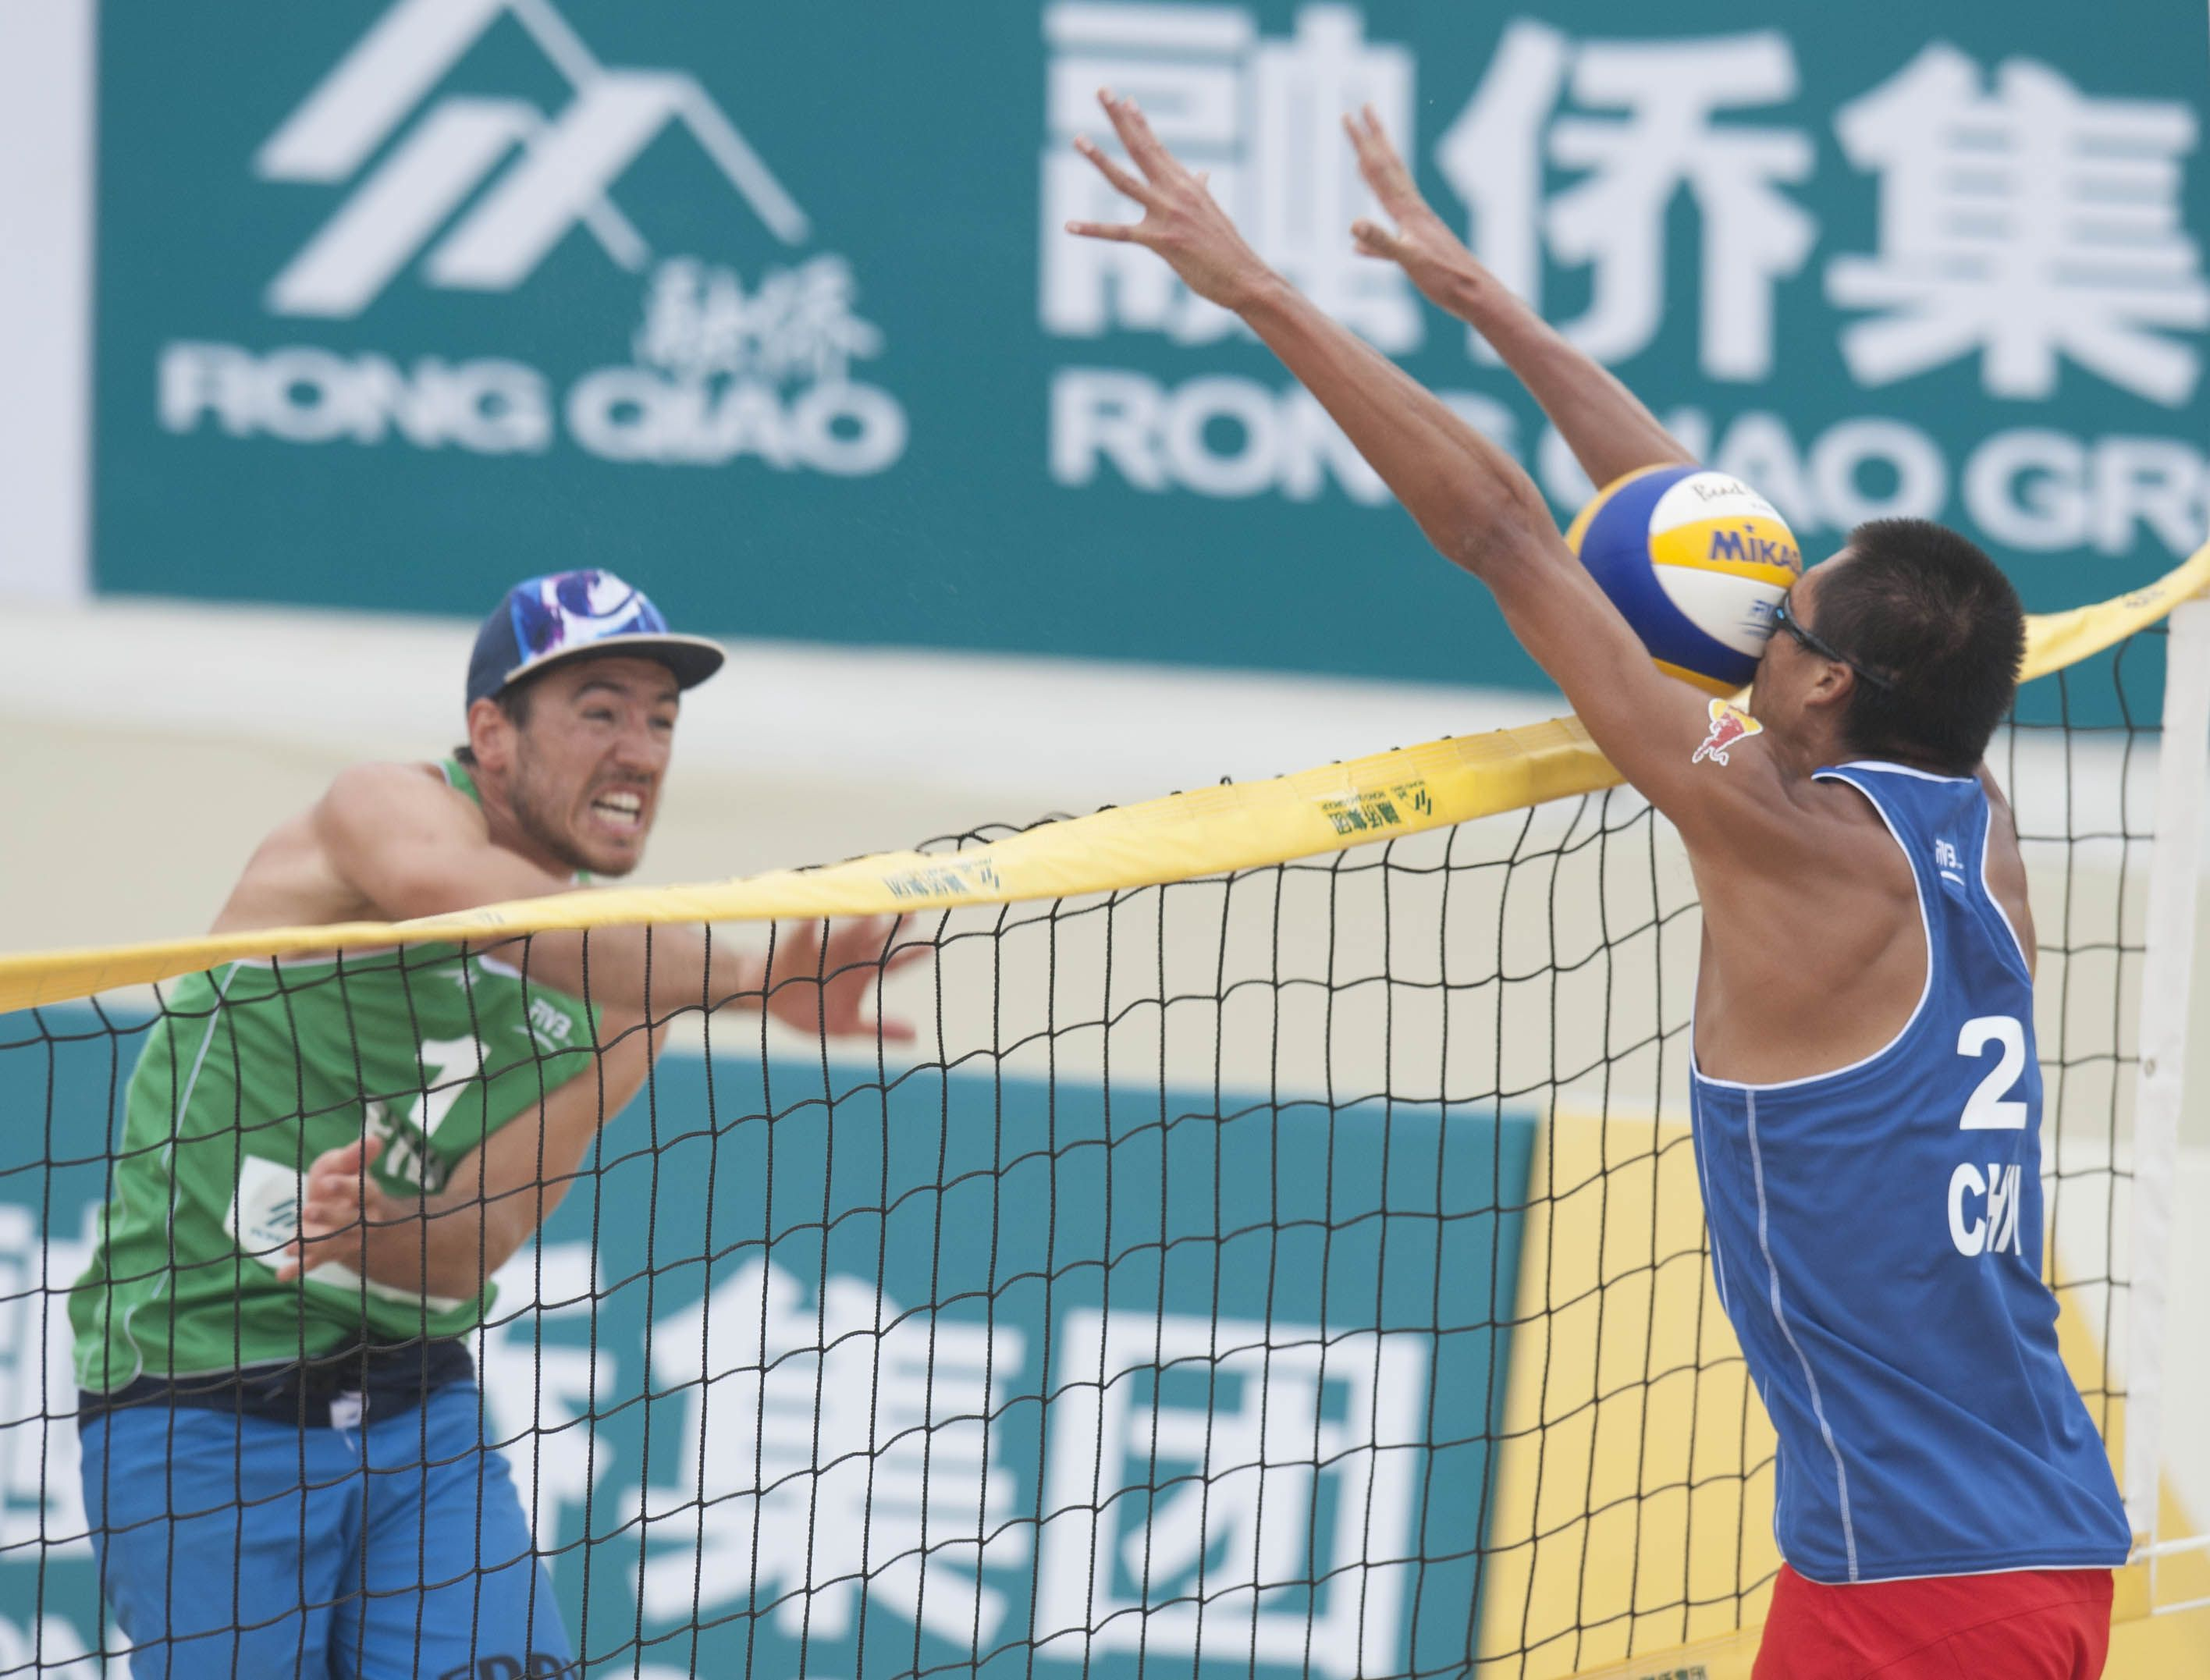 The Ball From France S Edouard Rowlandson Hits The Face Of Peng Gao From China At The Fivb Beach Volleyball F Fivb Beach Volleyball Beach Volleyball Volleyball